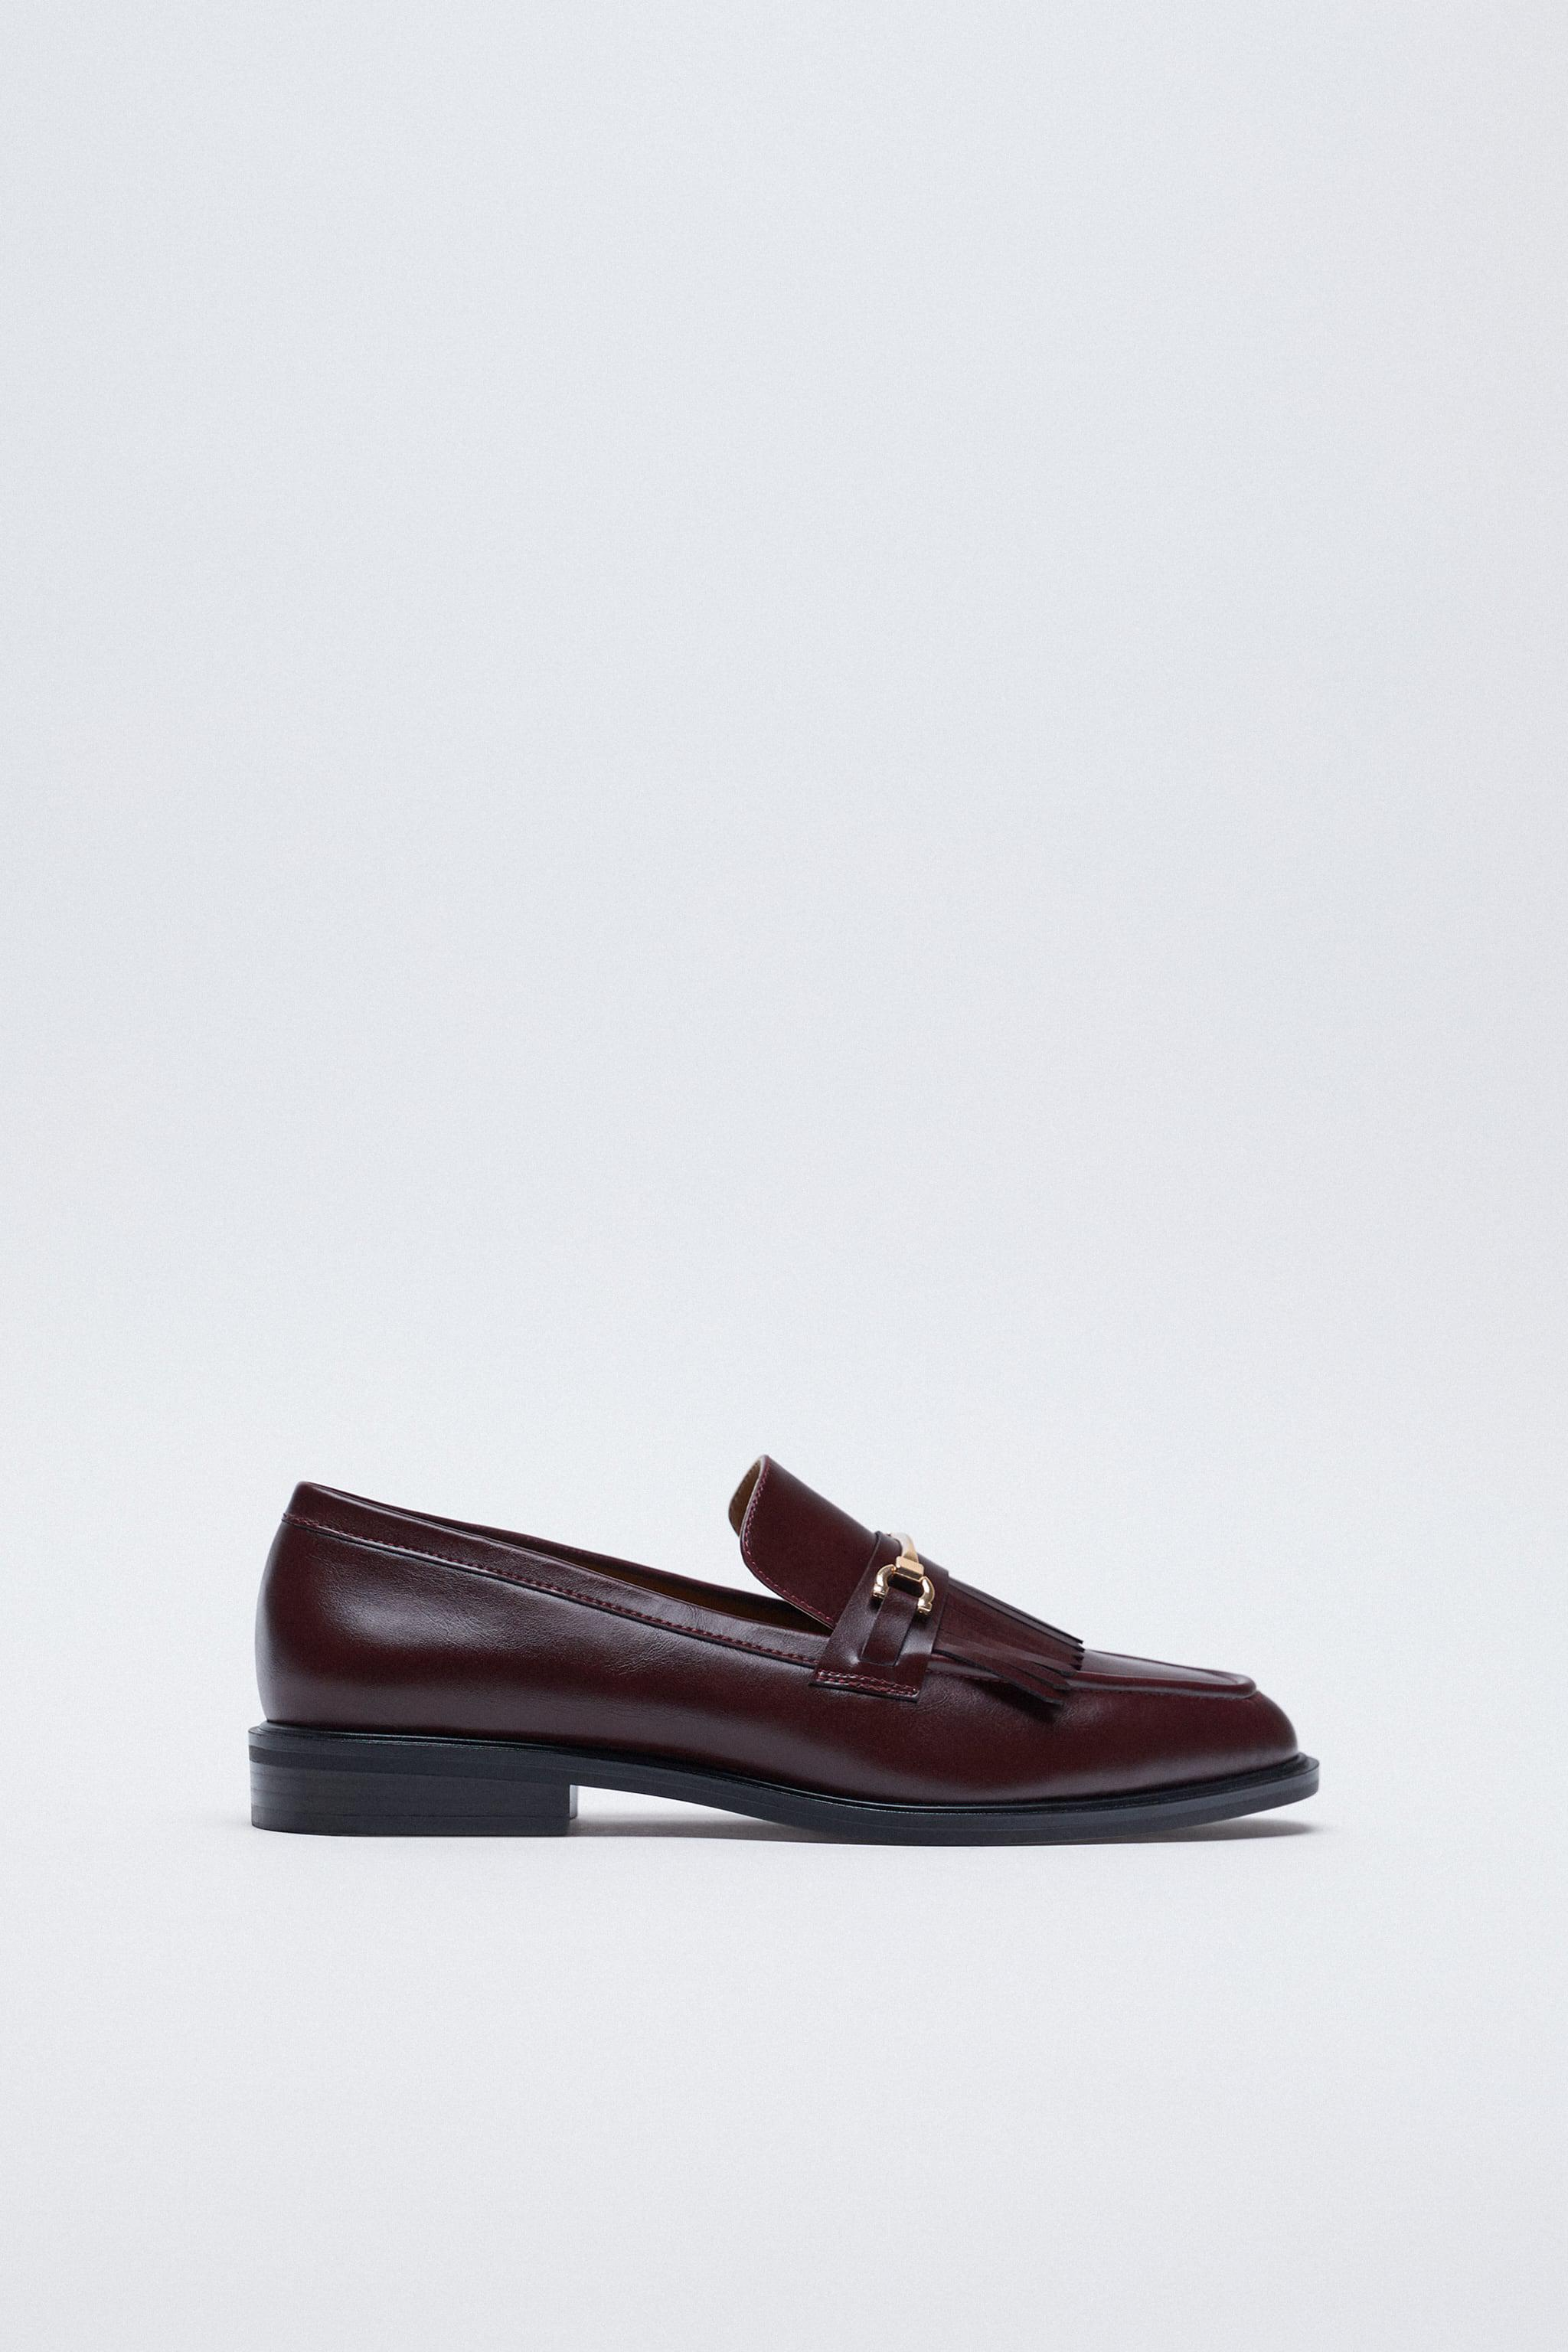 LOW HEEL FRINGED LOAFERS